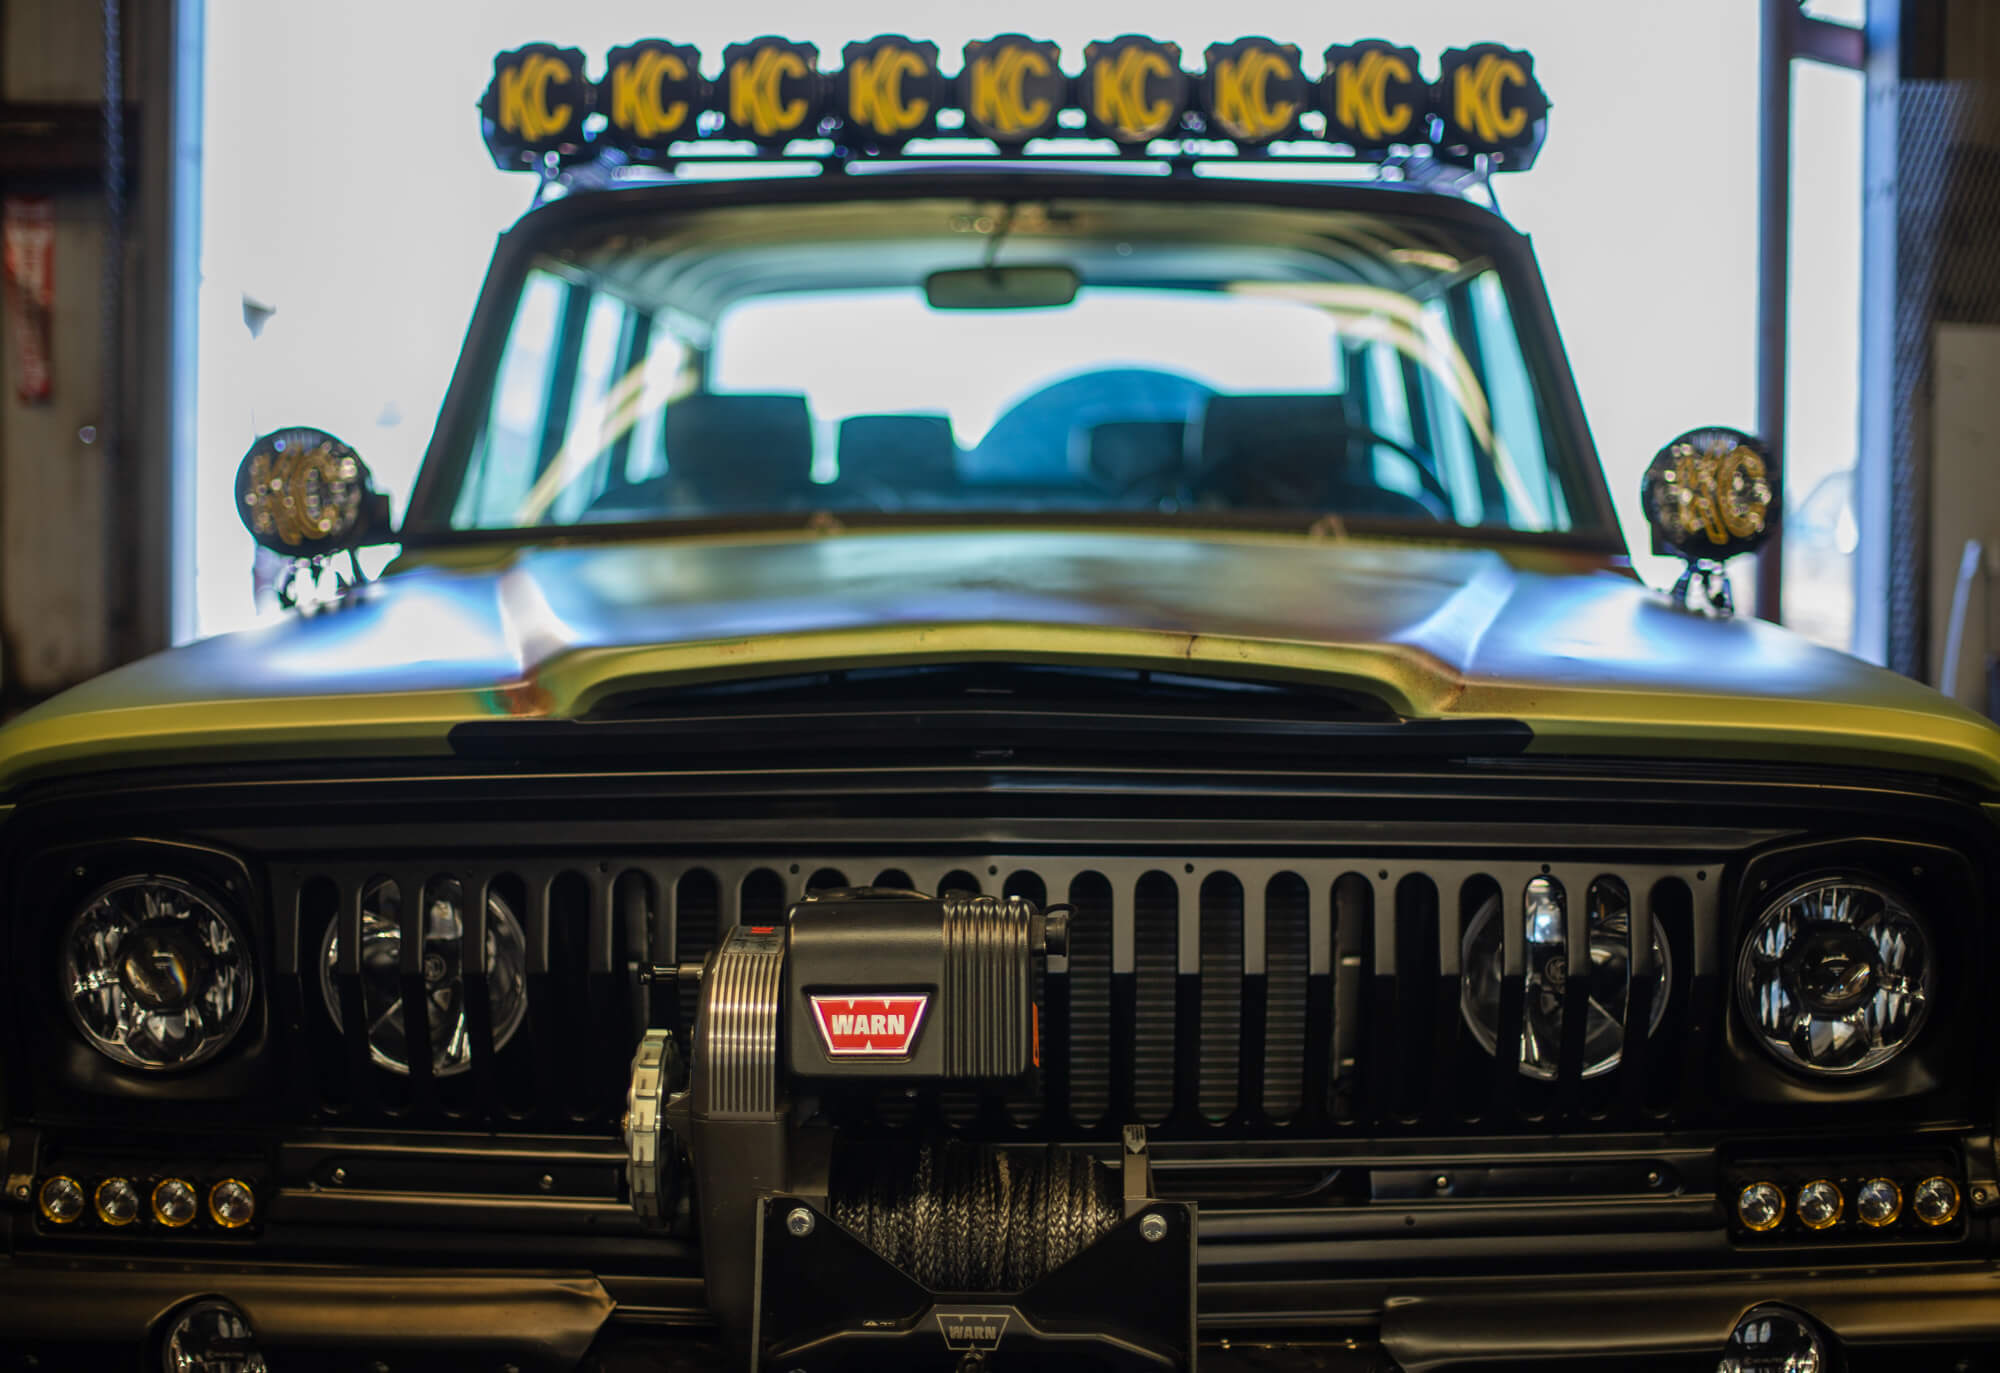 KC's Classic Jeep Wagoneer Off Road Reconditioned Build - Image #02